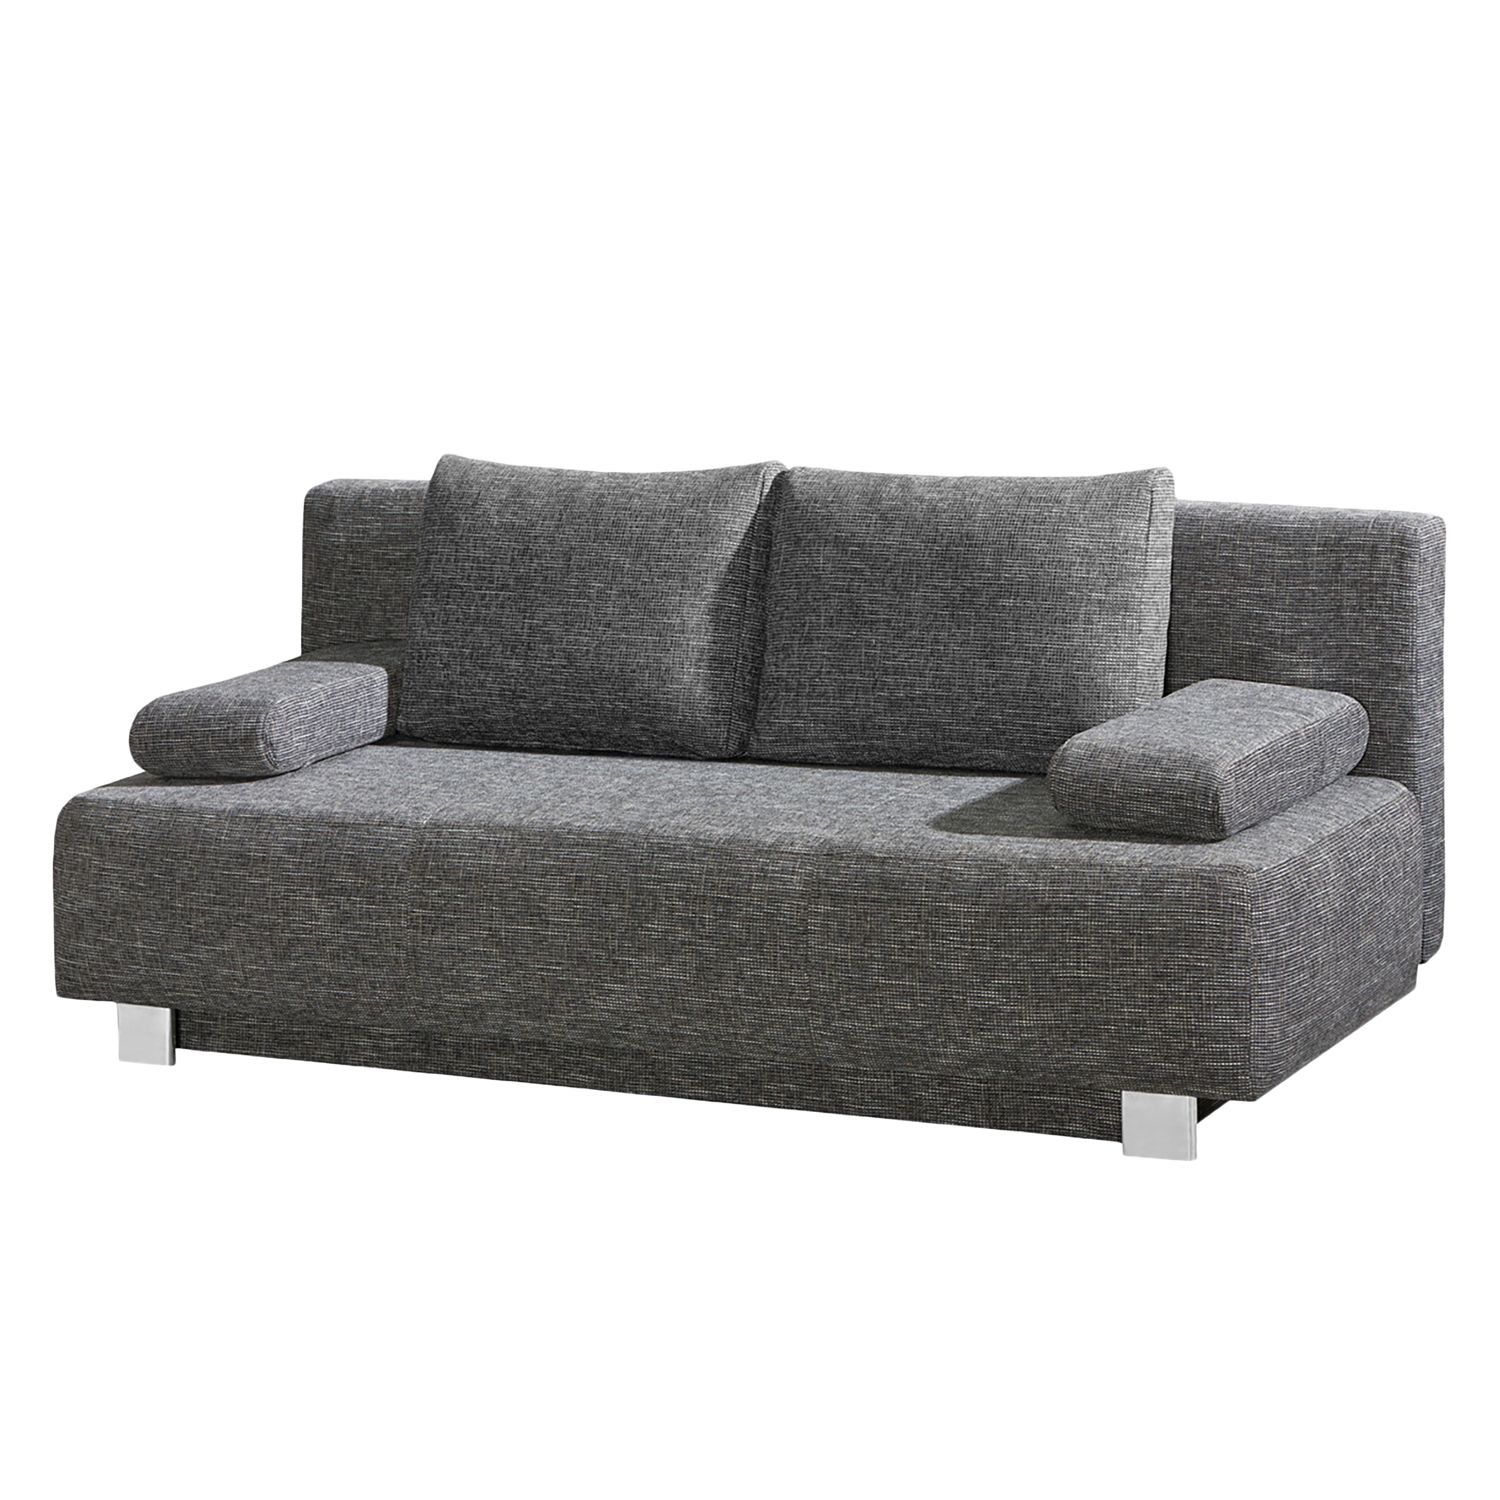 home24 Schlafsofa Fritch